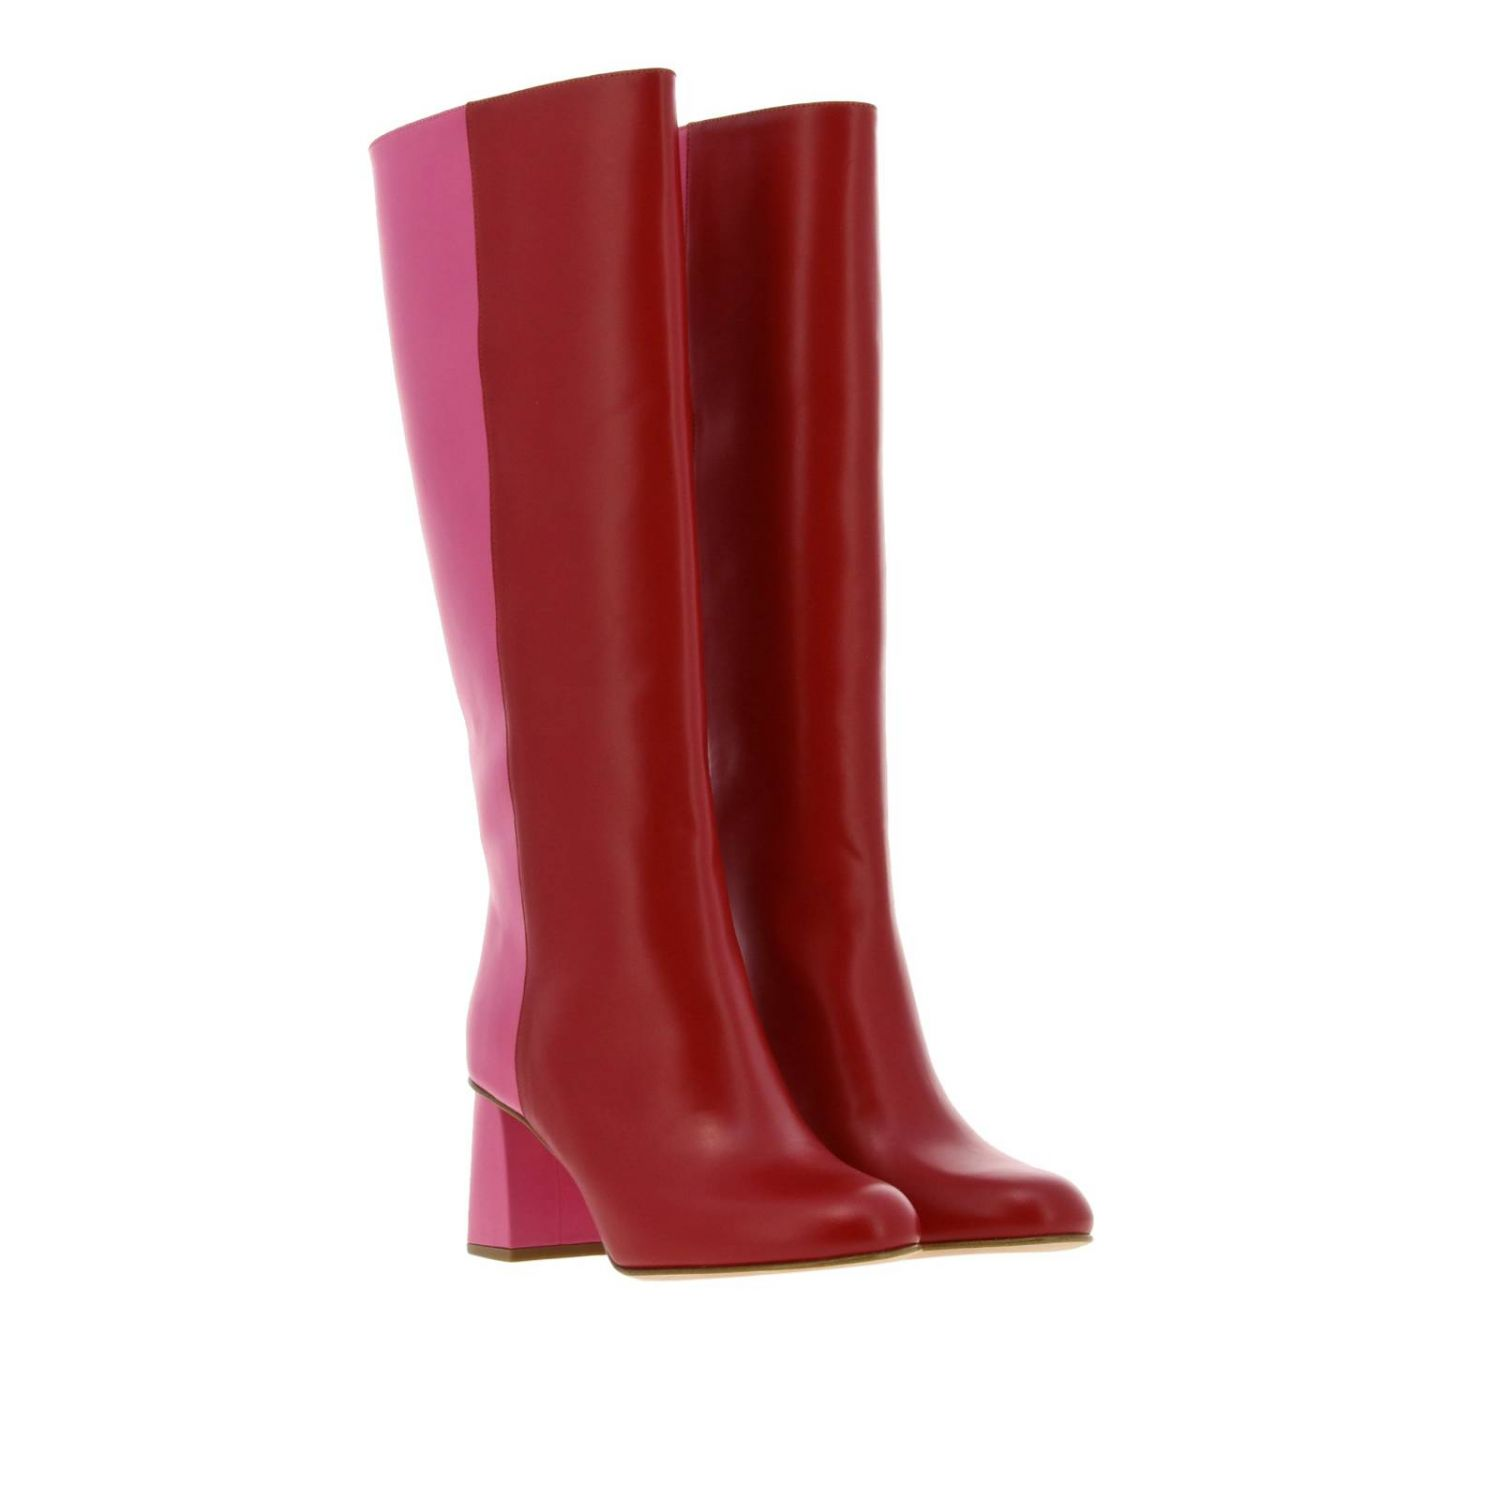 Boots women Red(v) red 2